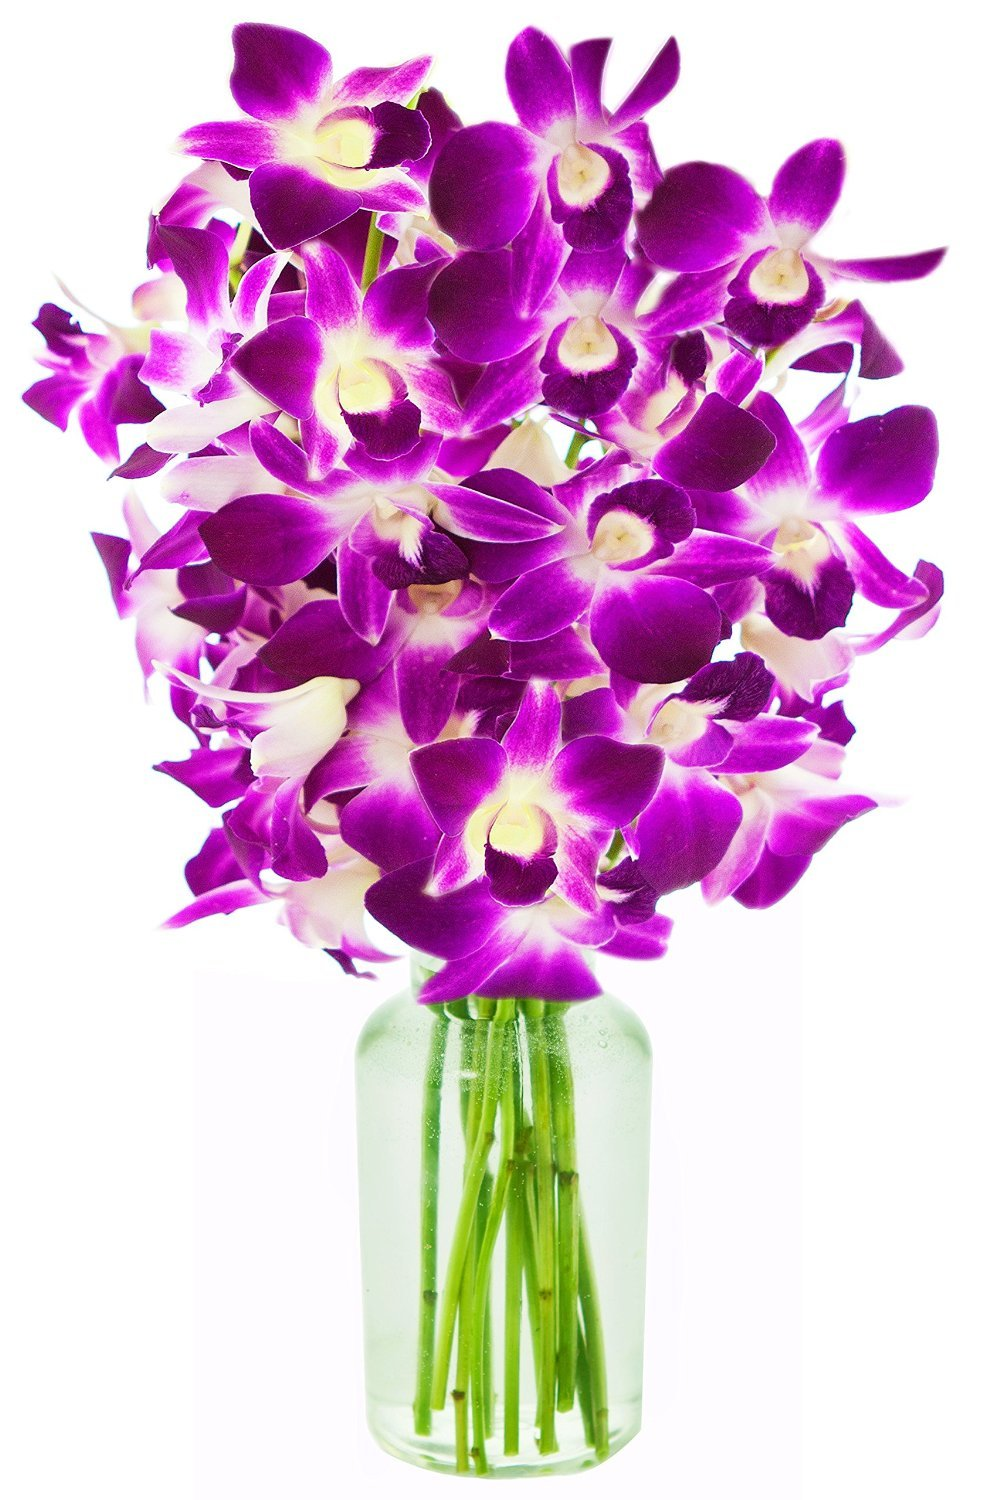 Fresh Cut Flowers -Dendrobium Purple Orchids with Vase by eflowerwholesale (Image #2)